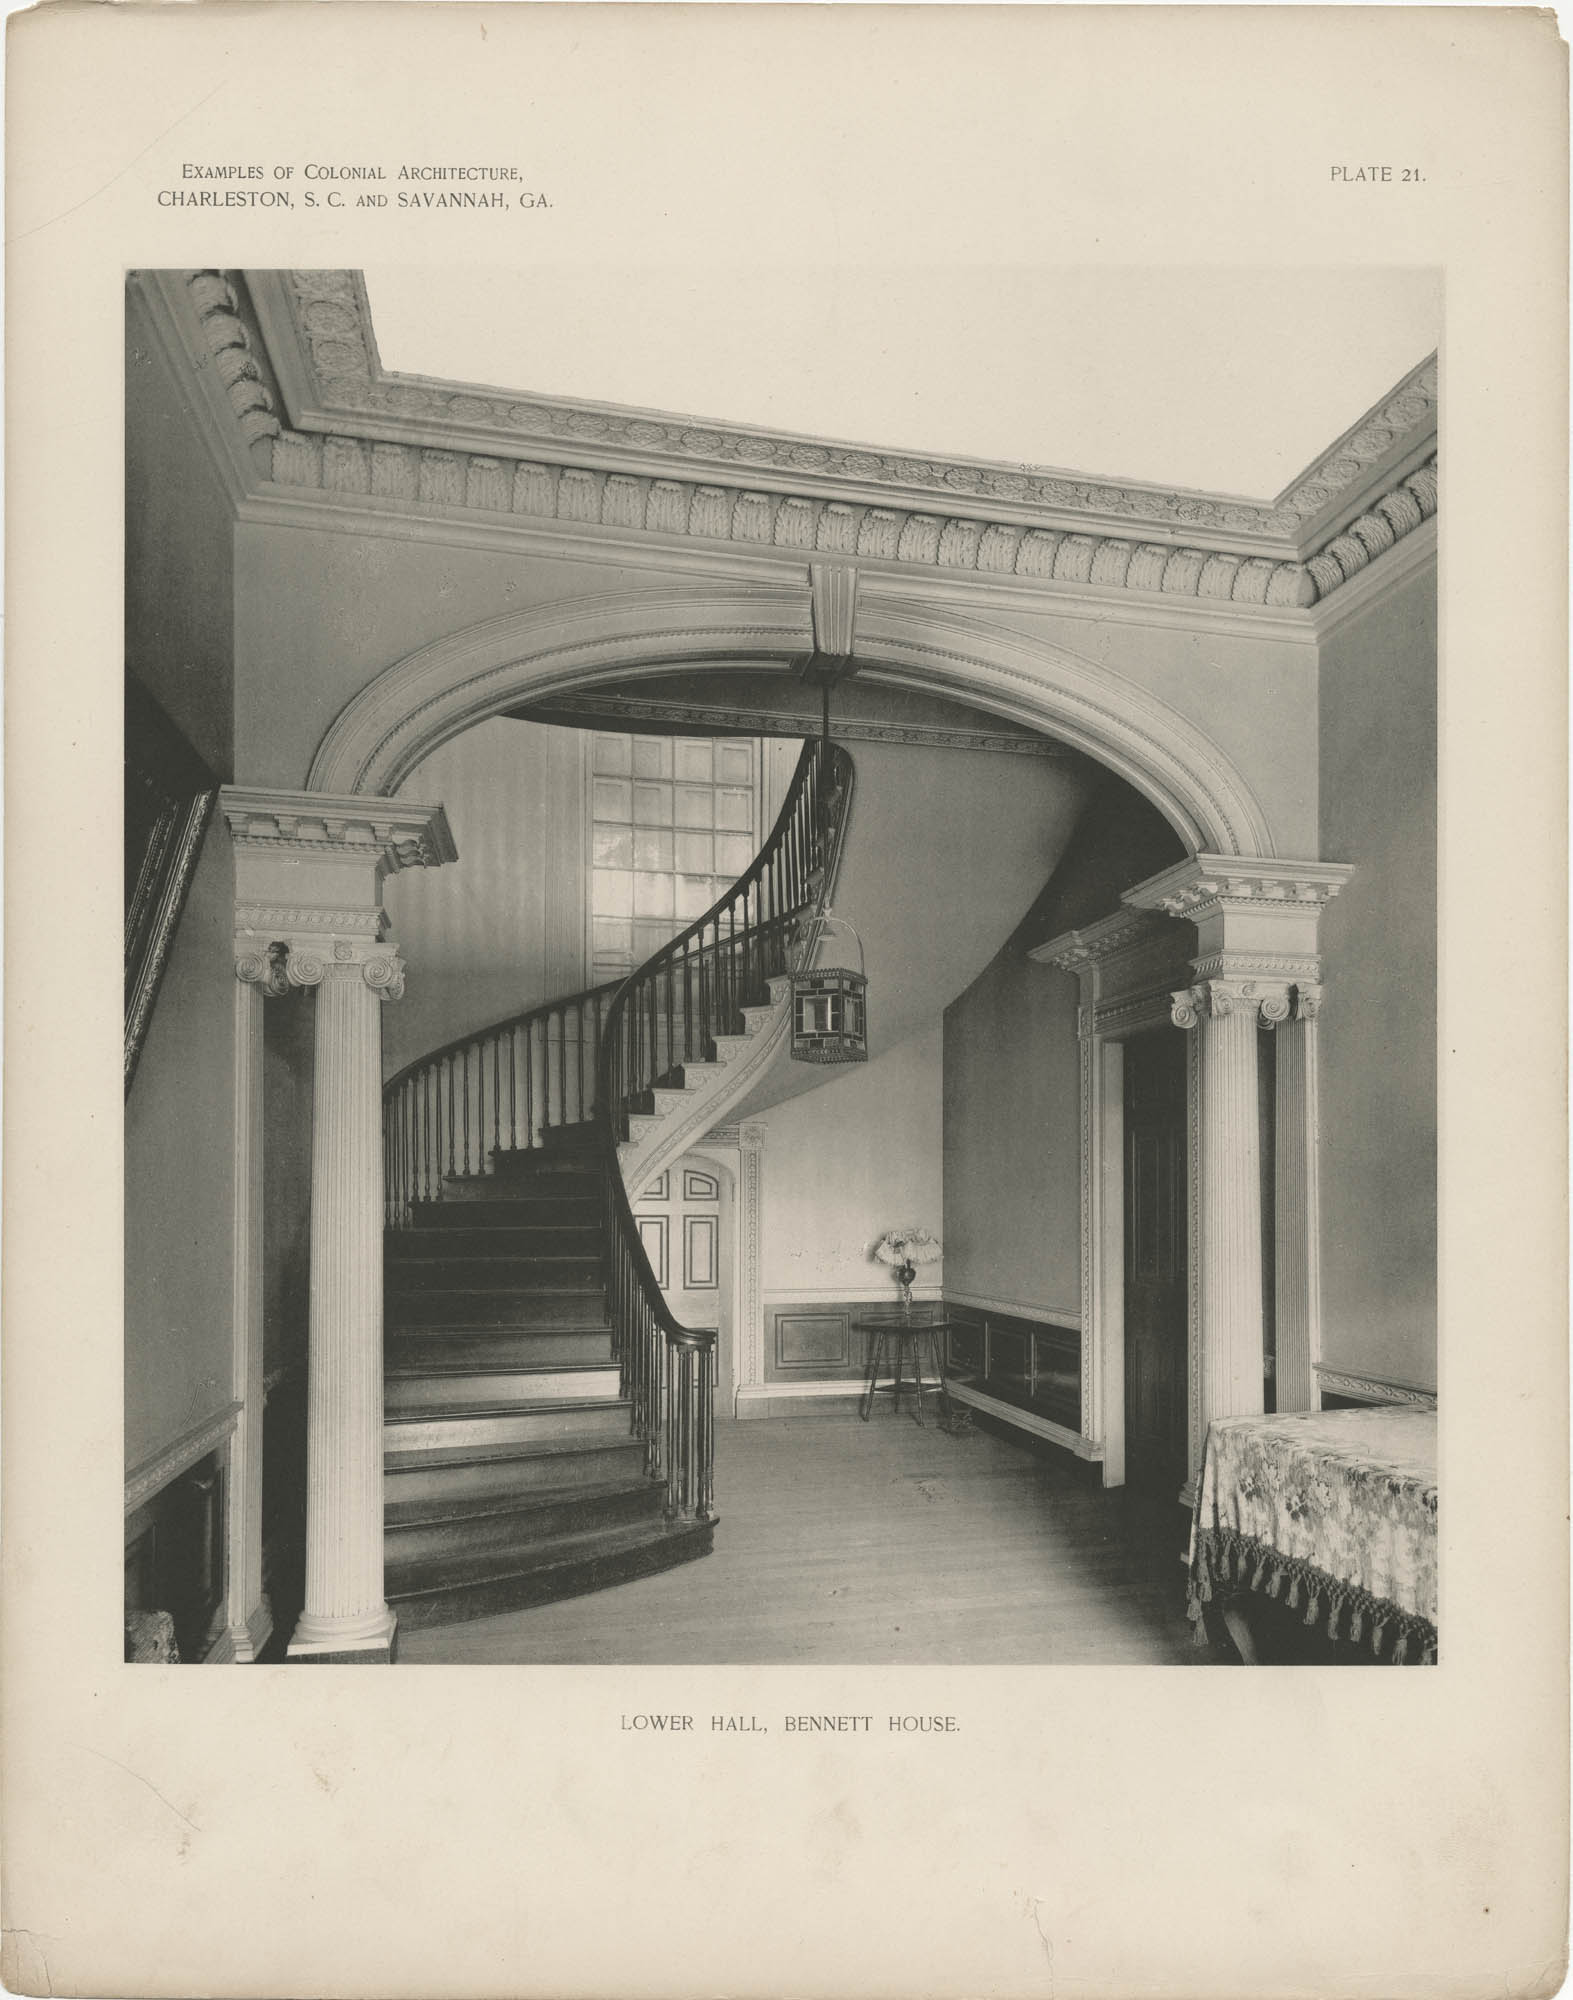 Plate 21: Lower Hall, Bennett House